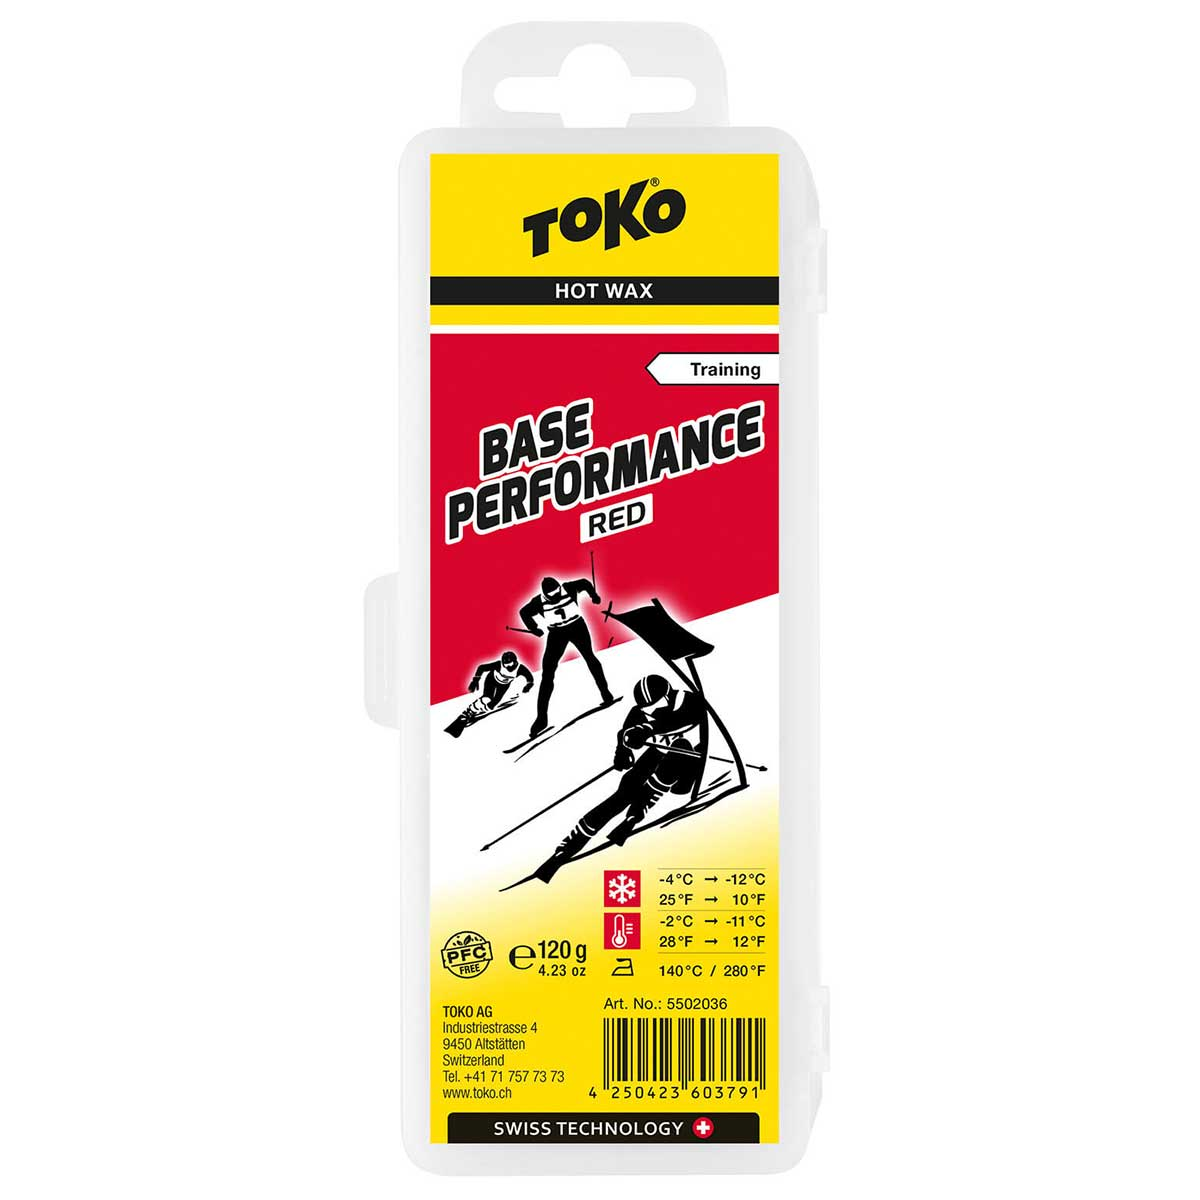 Toko Base Performance Wax in Red